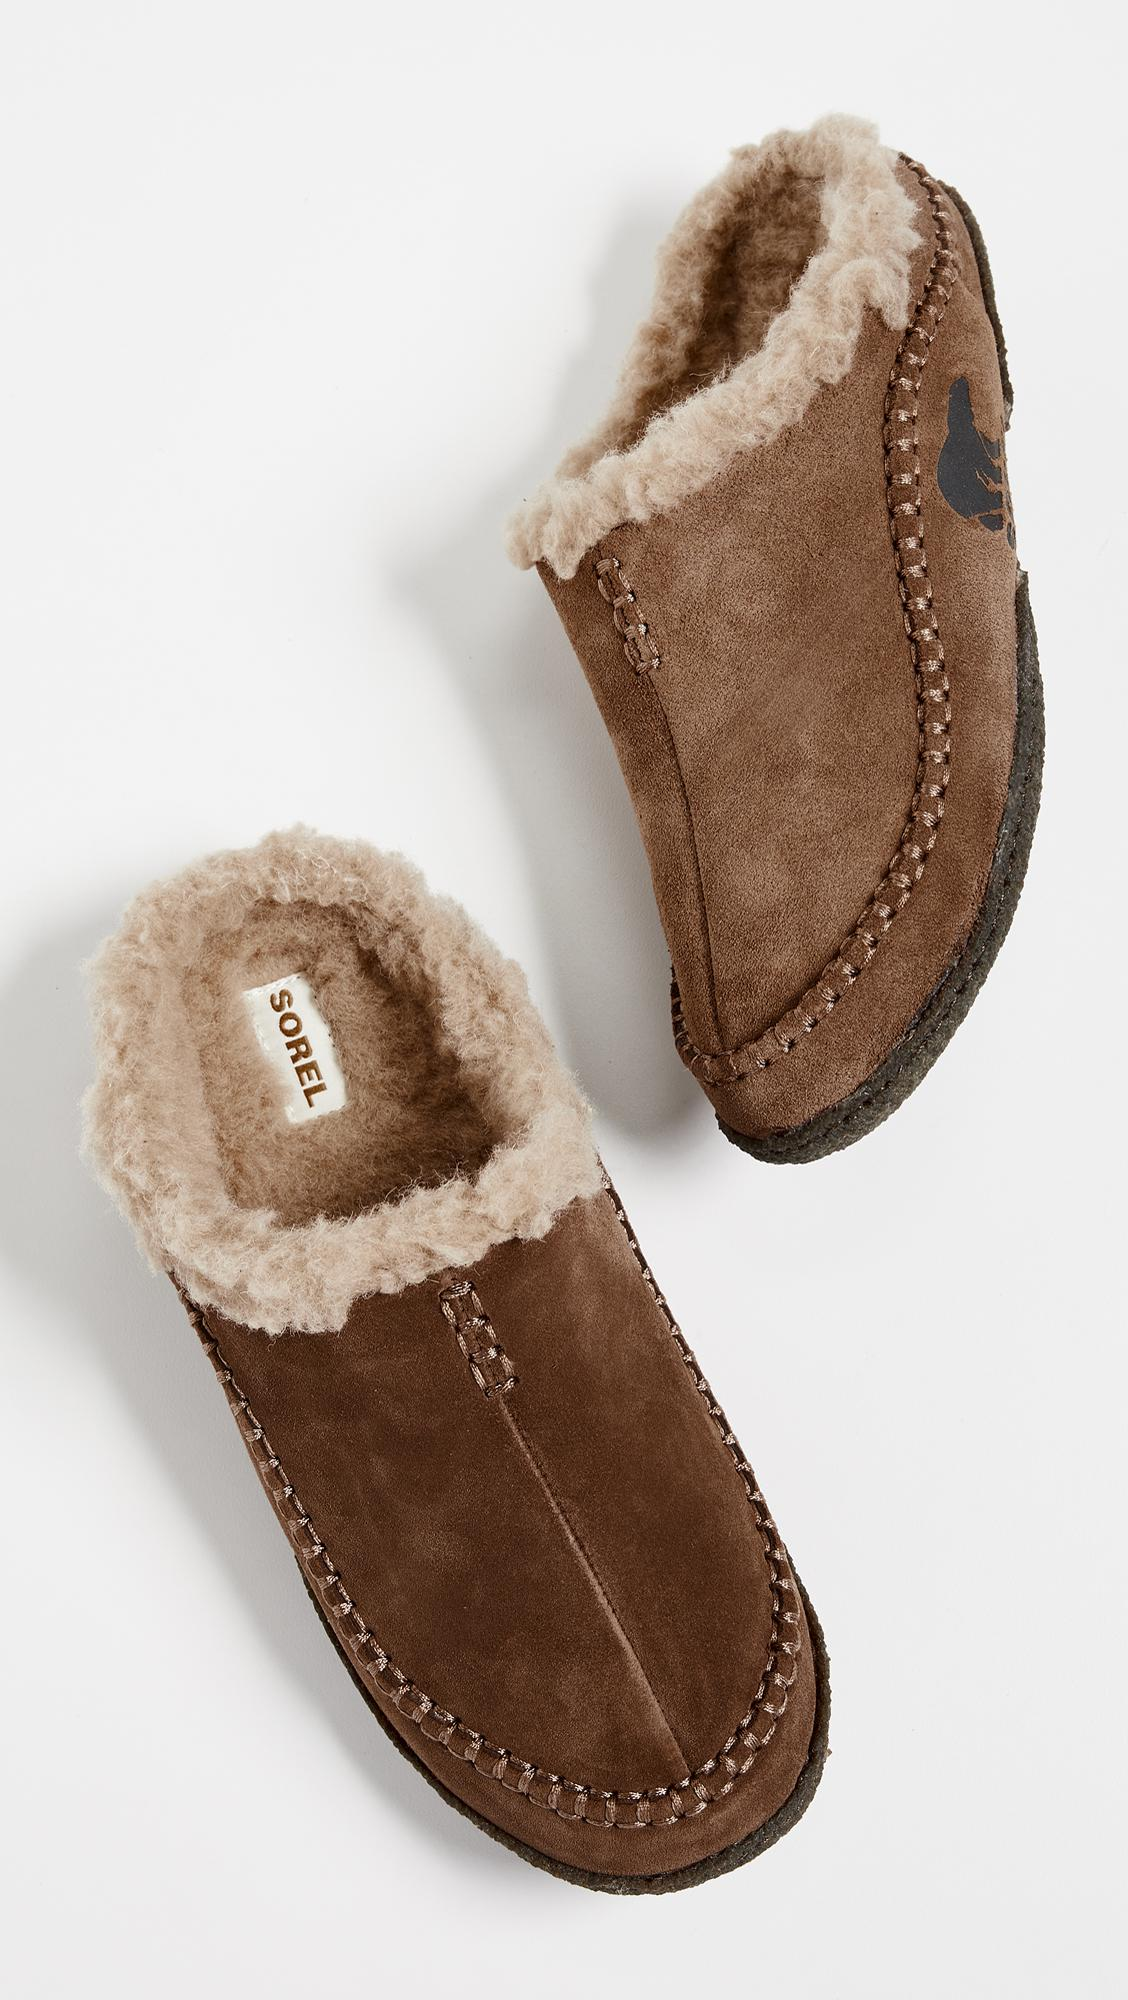 f83bc0dbdeb7 Sorel - Brown Falcon Ridge Slippers for Men - Lyst. View fullscreen